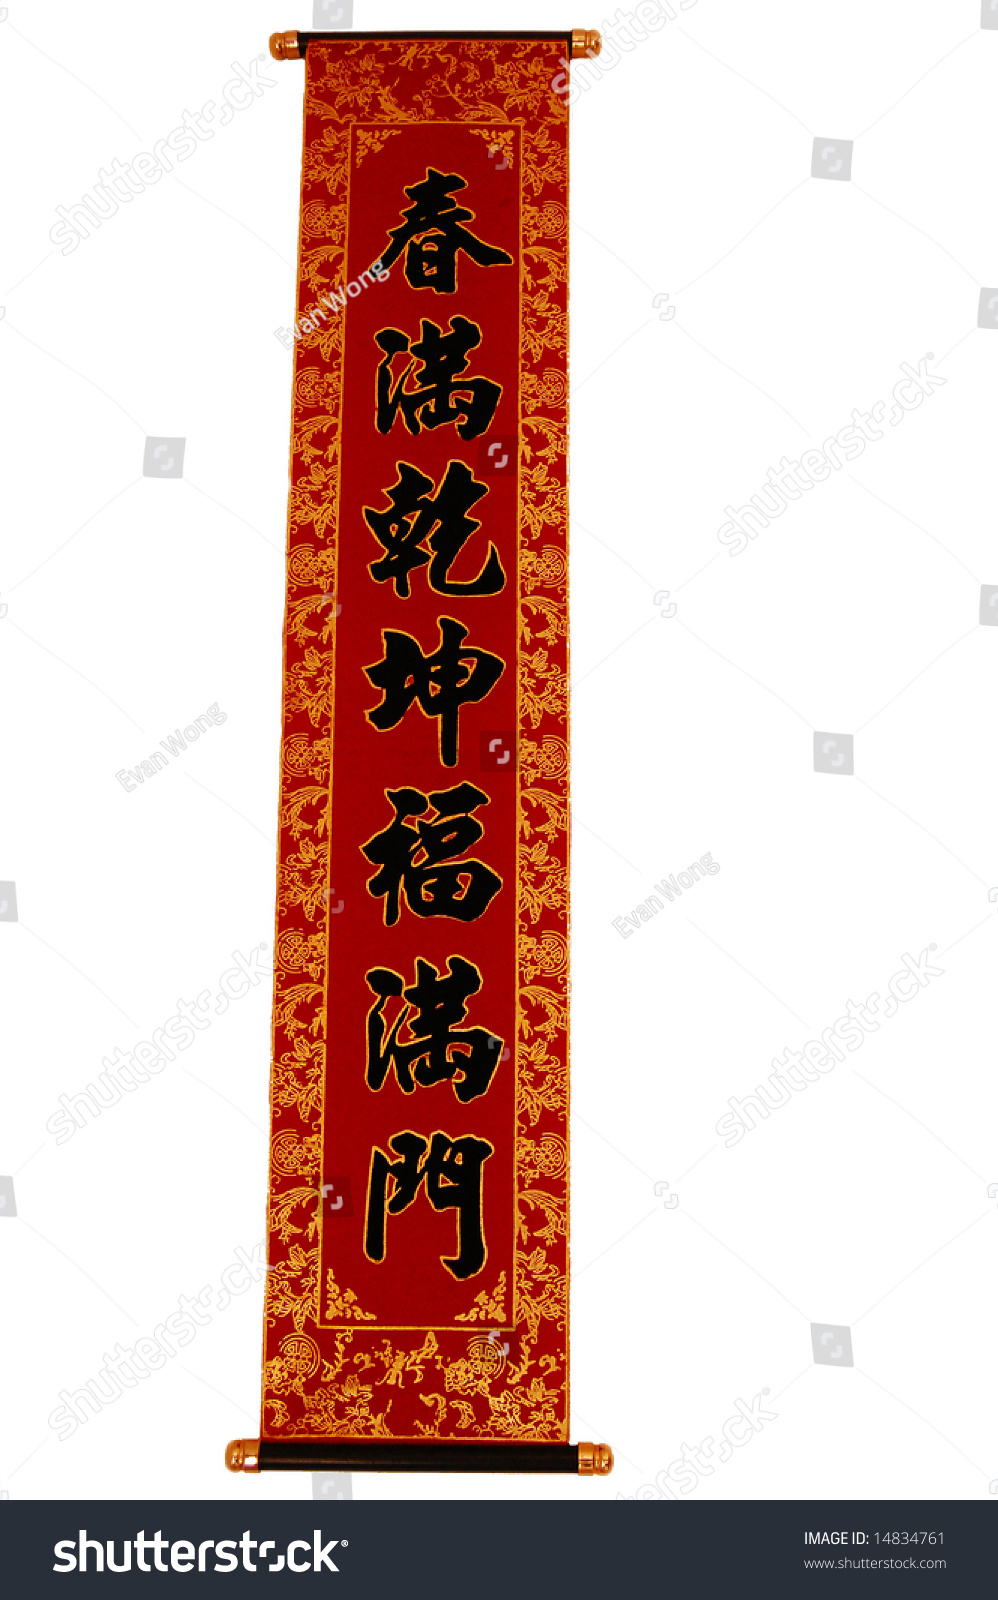 Chinese calligraphy banner scroll stock photo